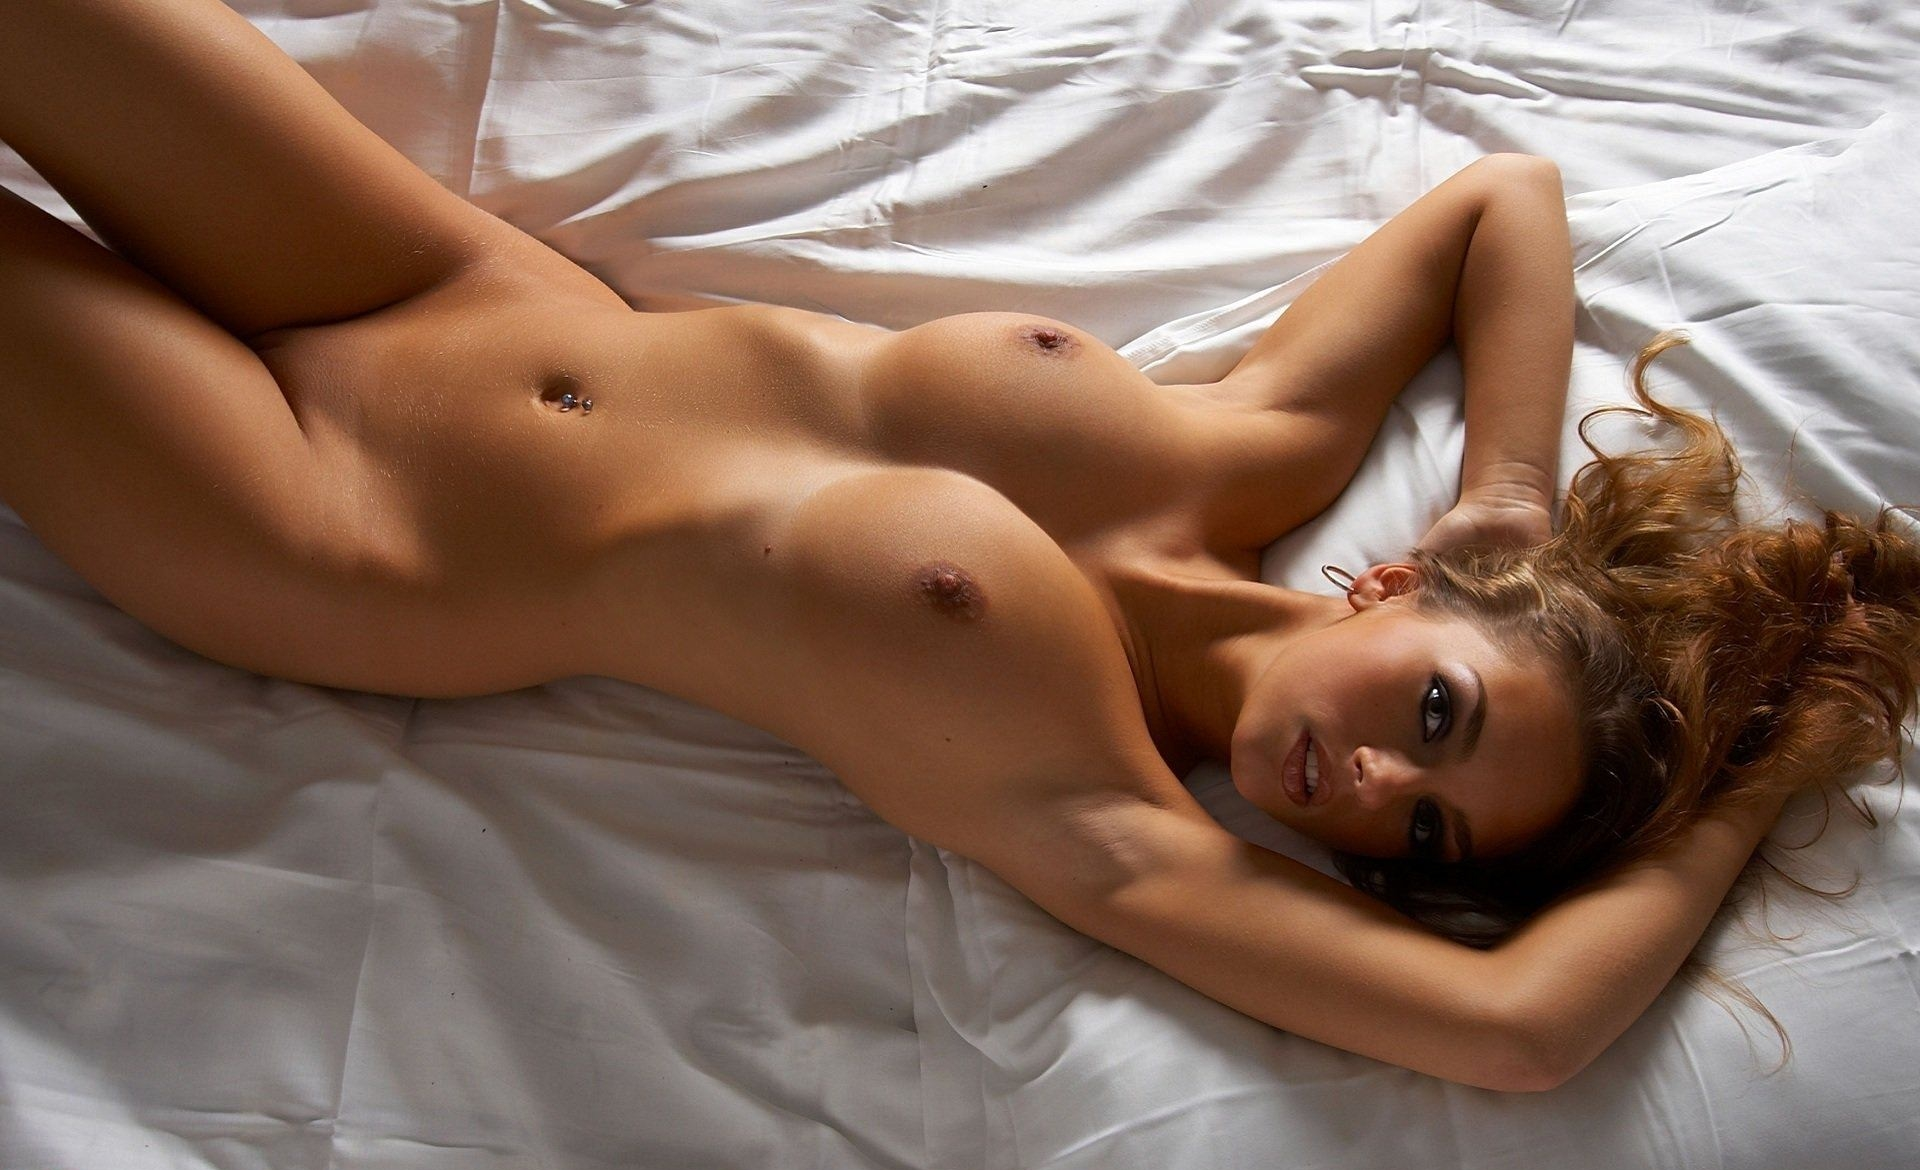 Hot sexy girls perfect body naked